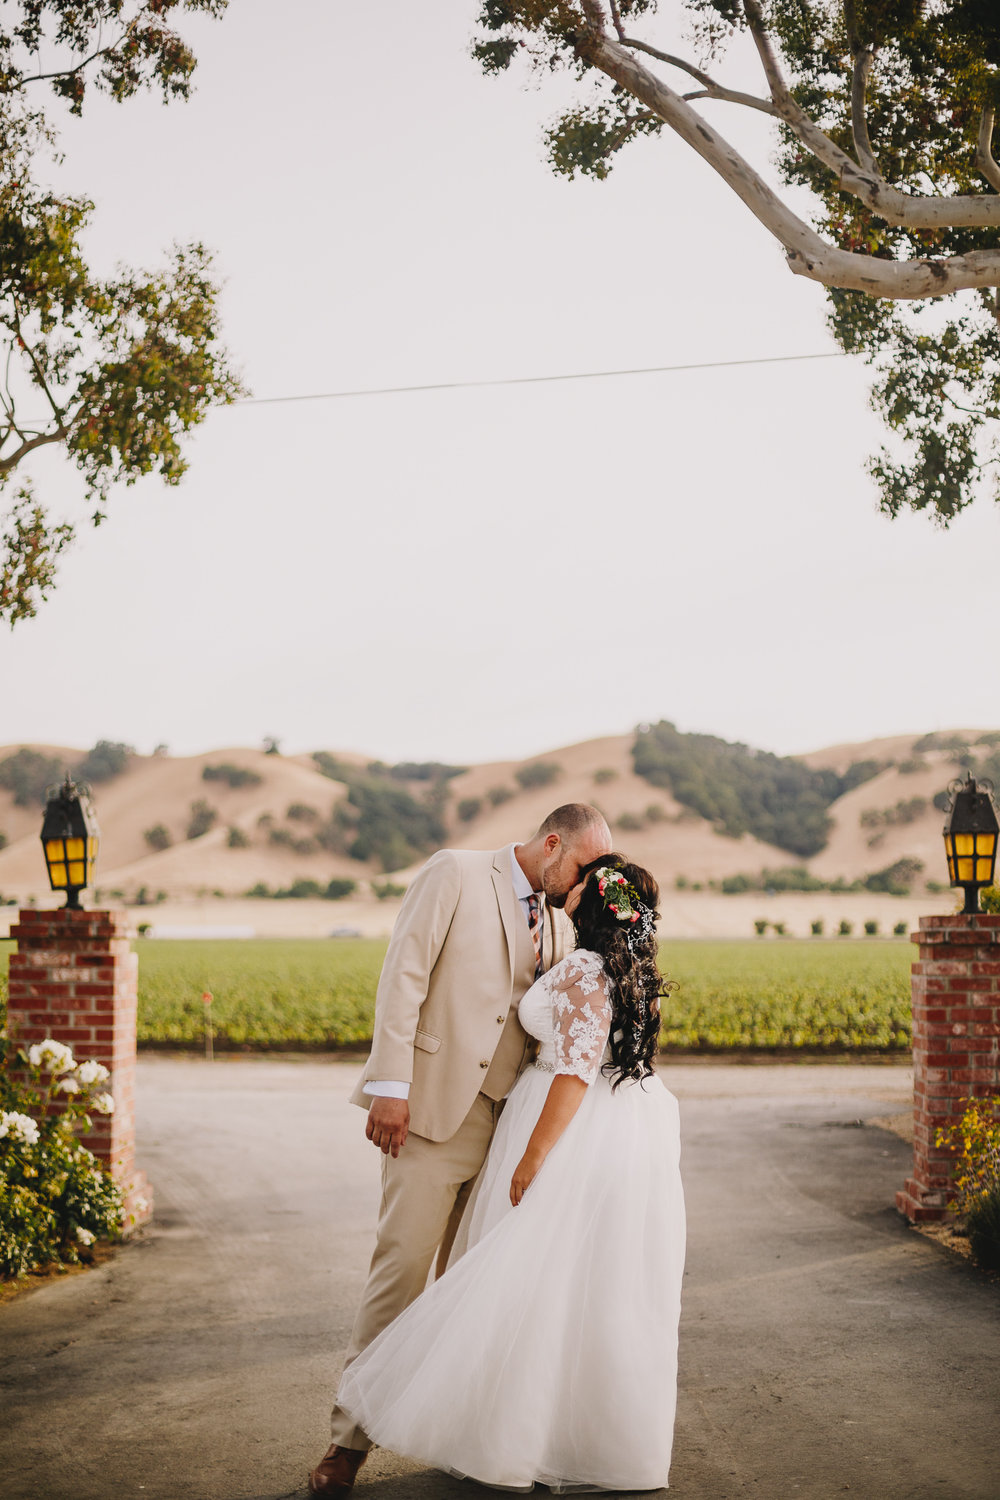 Archer Inspired Photography Fitz Place San Martin Wedding Lifestyle Documentary Affordable Photographer South Bay-564.jpg